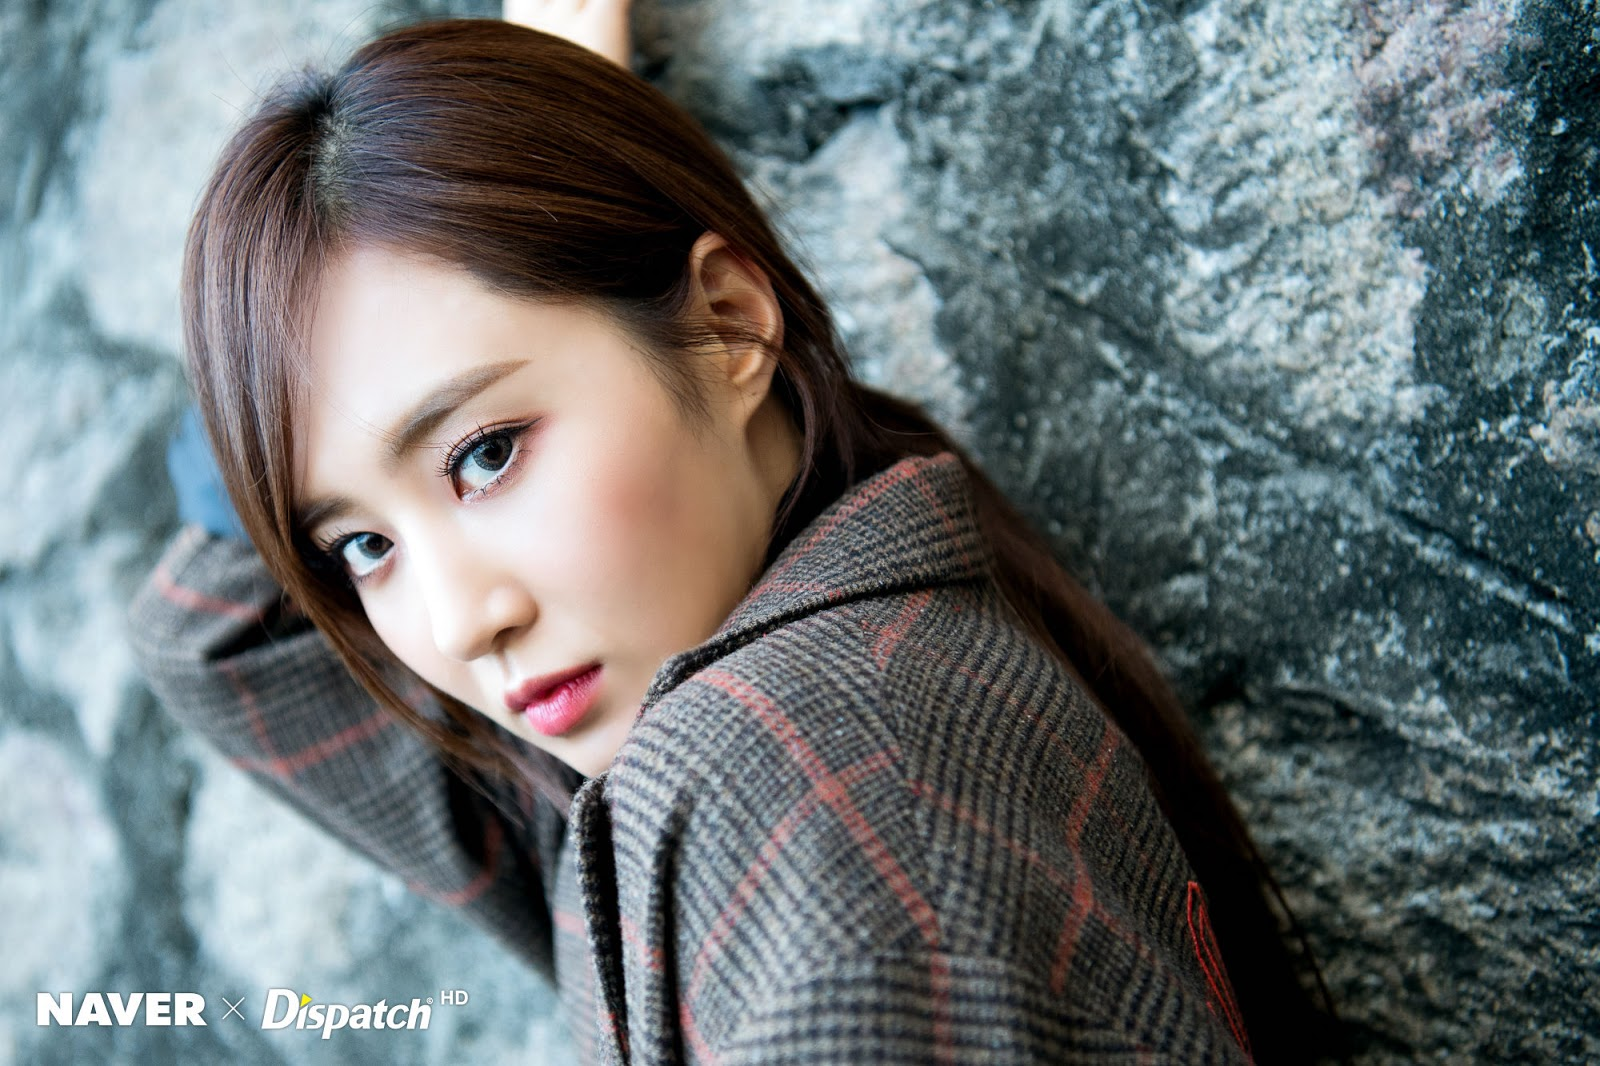 SNSD Yuri Becomes a Gossip After Her Brother Sued for 10 Years in Prison for Rape